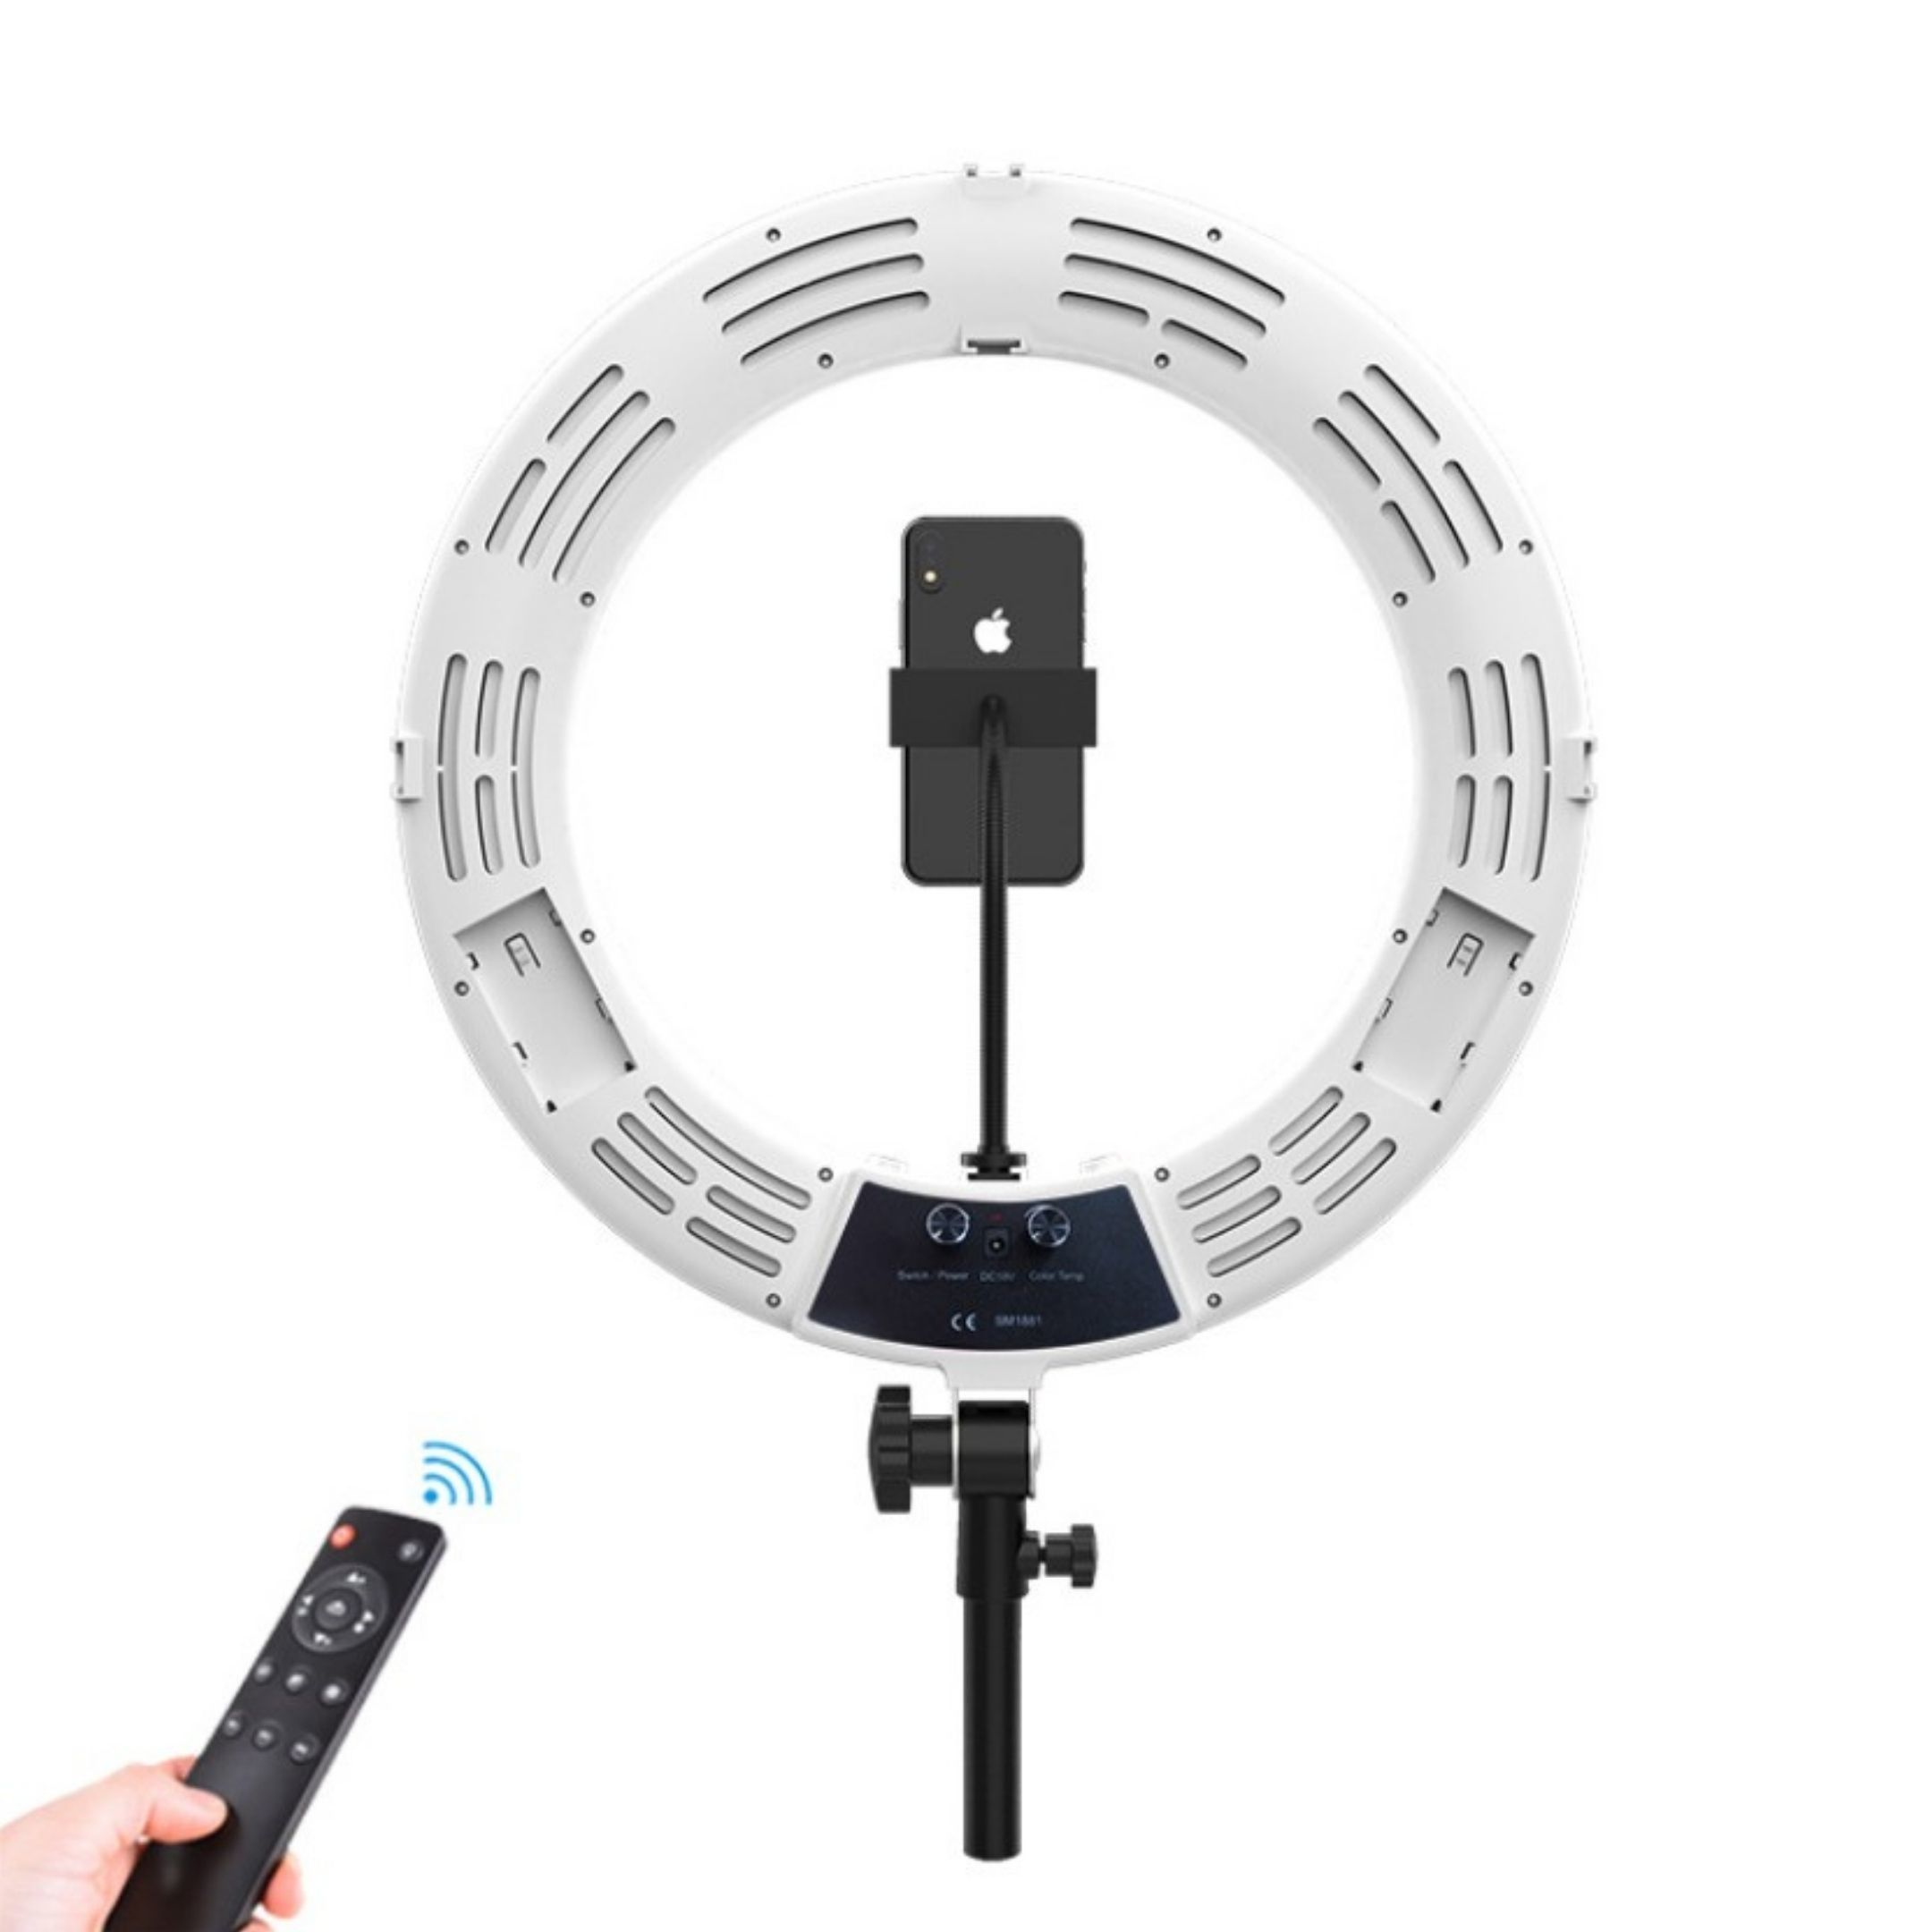 ELITE 18inch Ring Light - without tripod